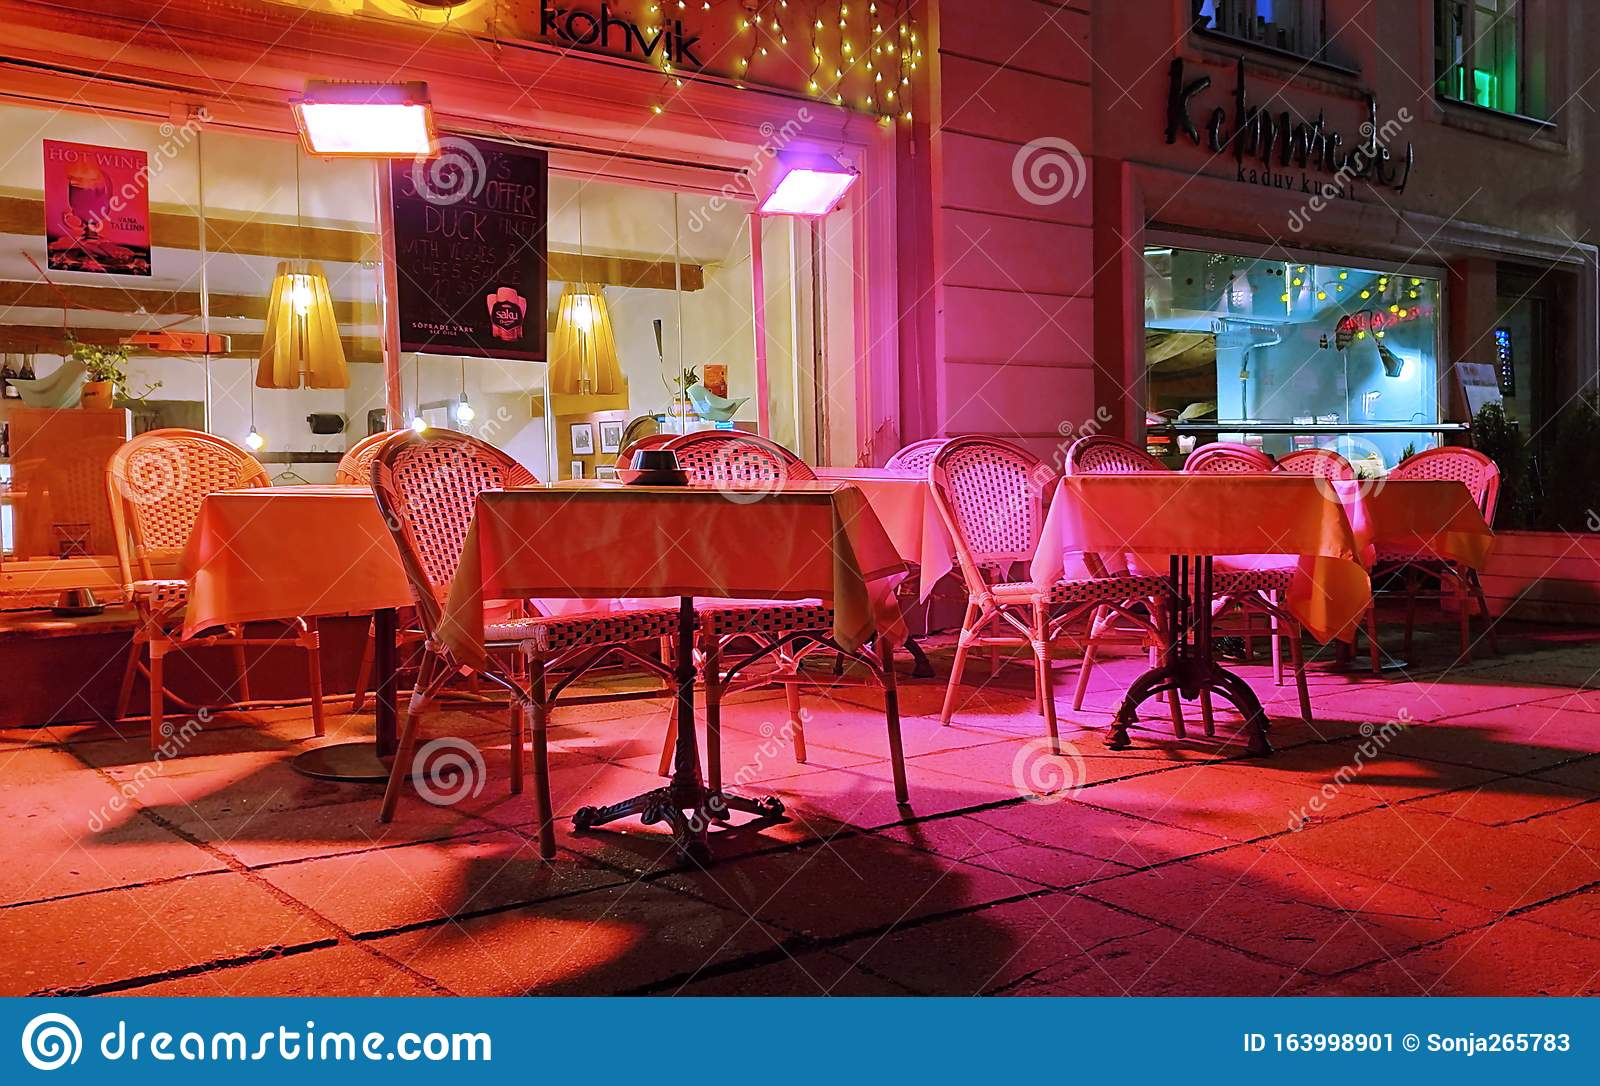 City Night Street Cafe Tables Waiting Tourist On Town Square In The City Light Illumination Pink And Yellow Blue Windows Reflect Stock Image Image Of Evening Cafe 163998901